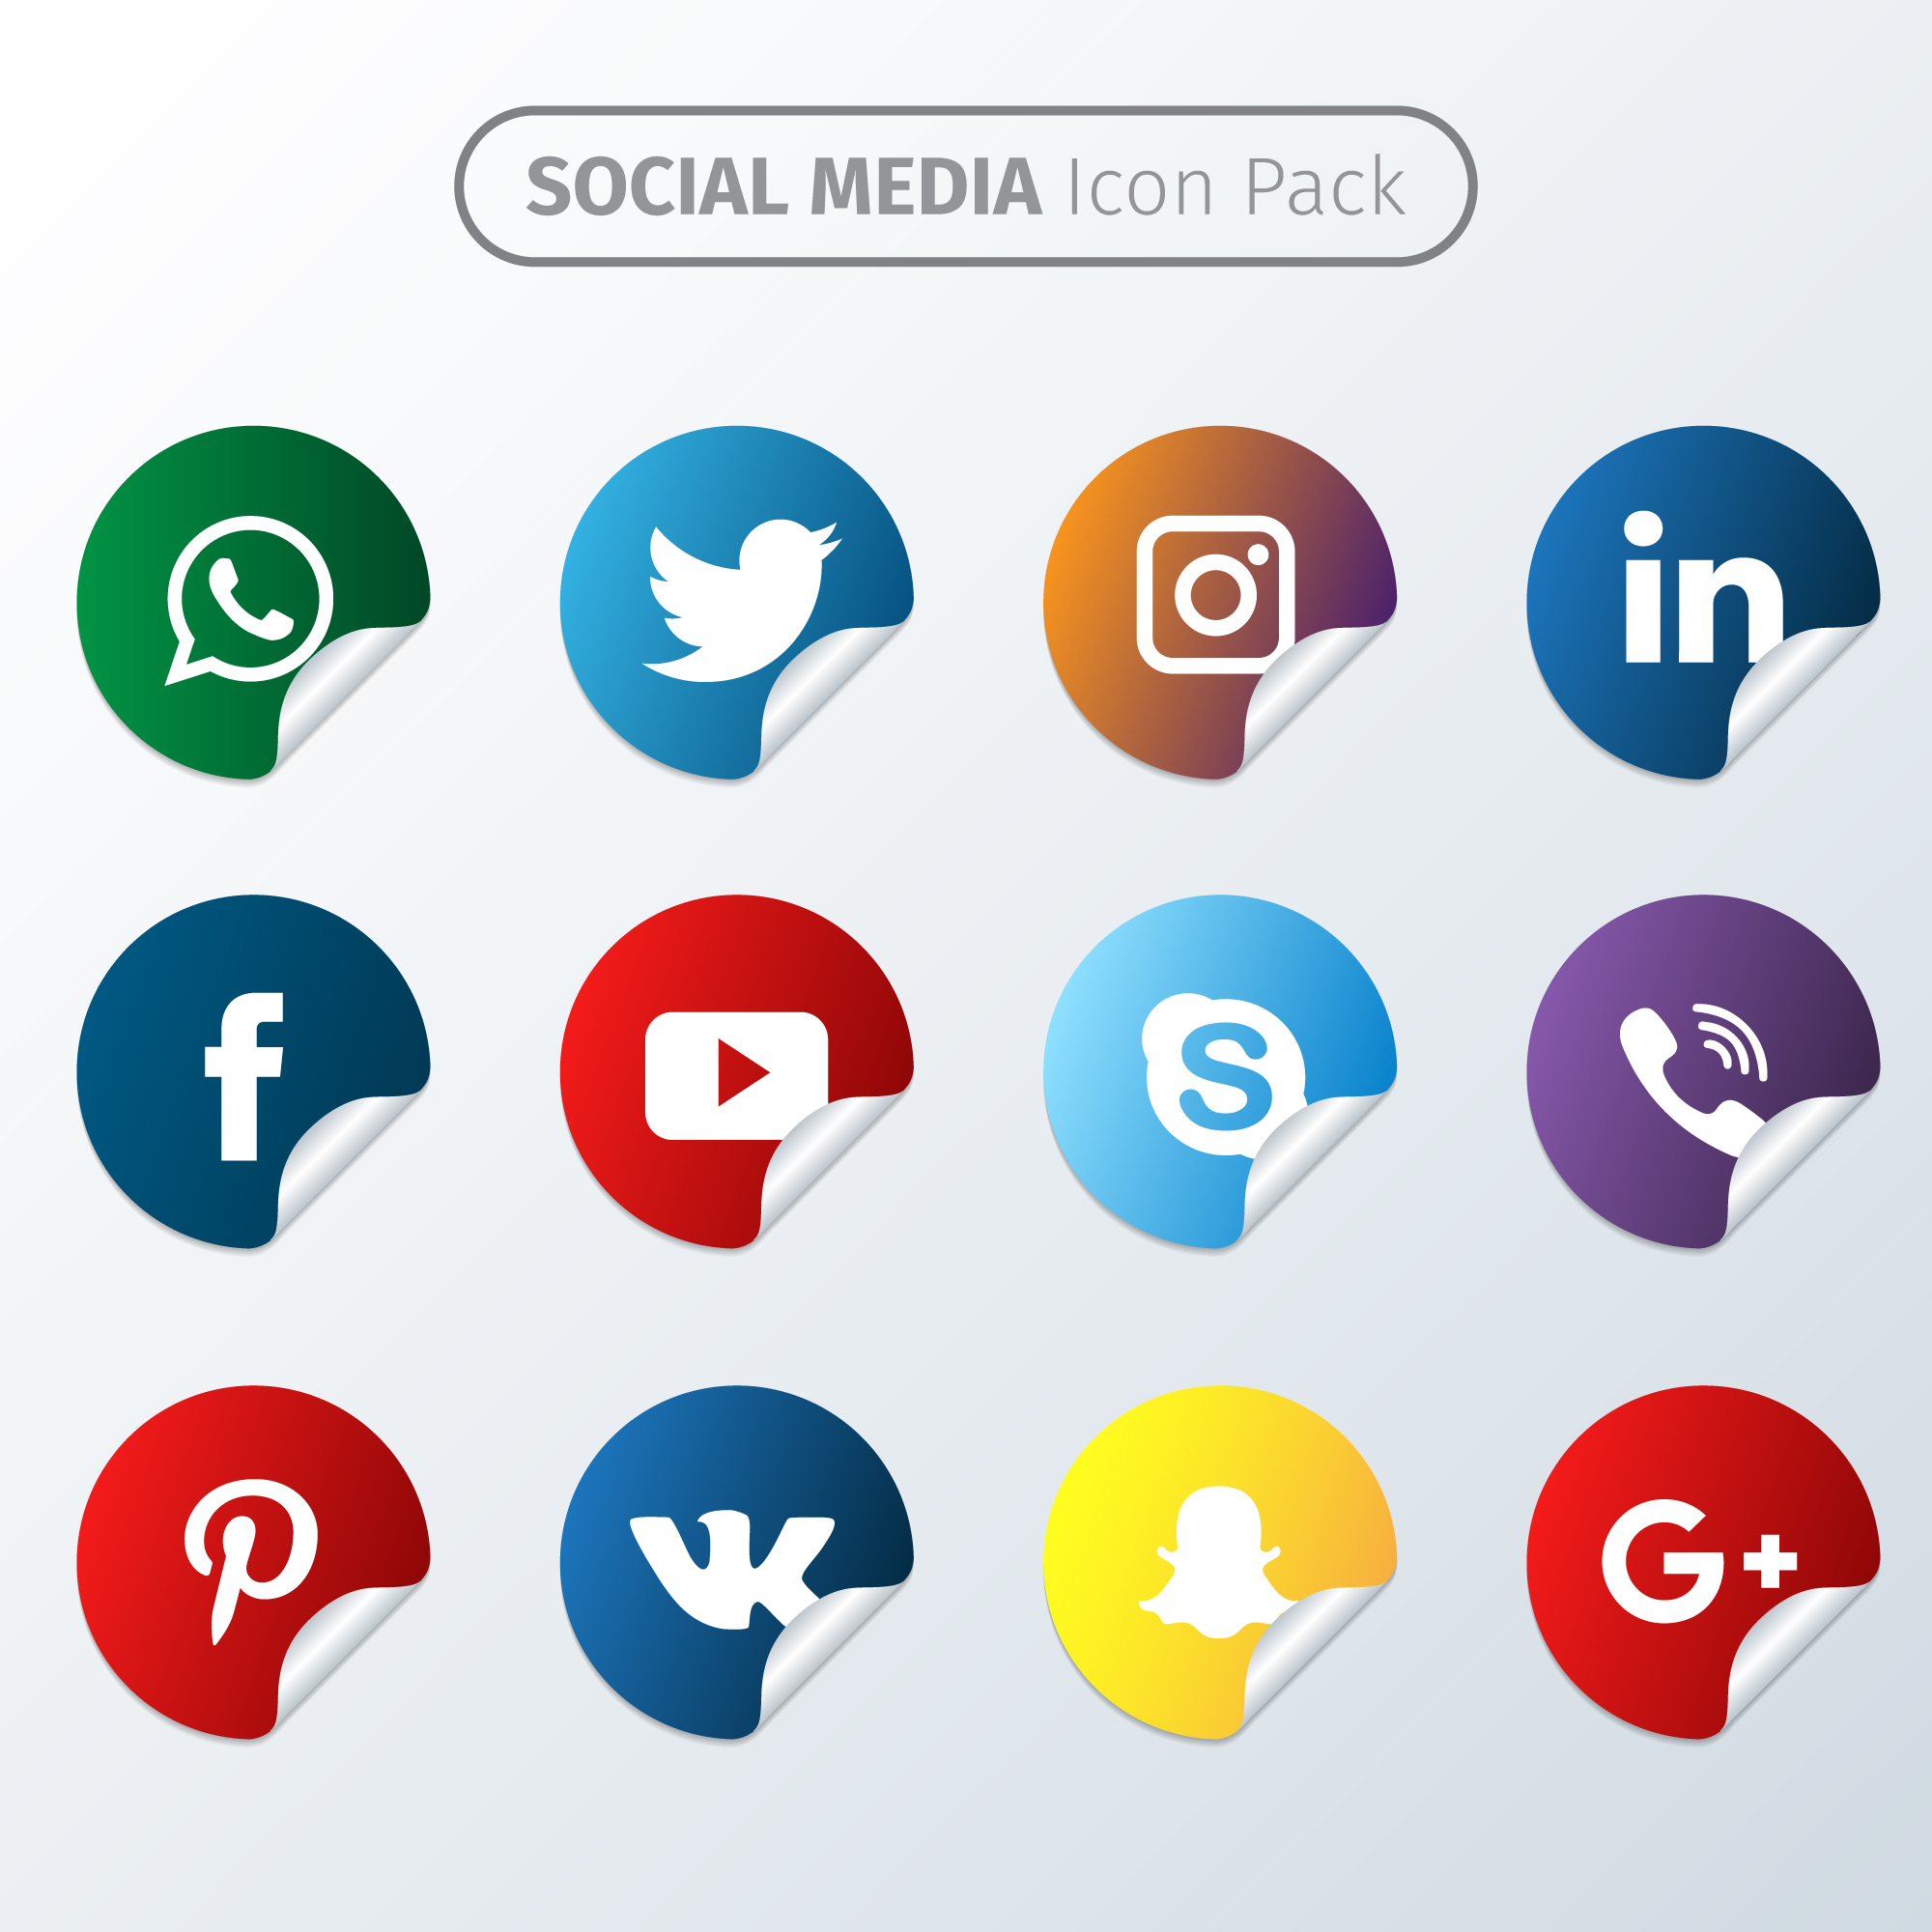 Sticker icon pack social media